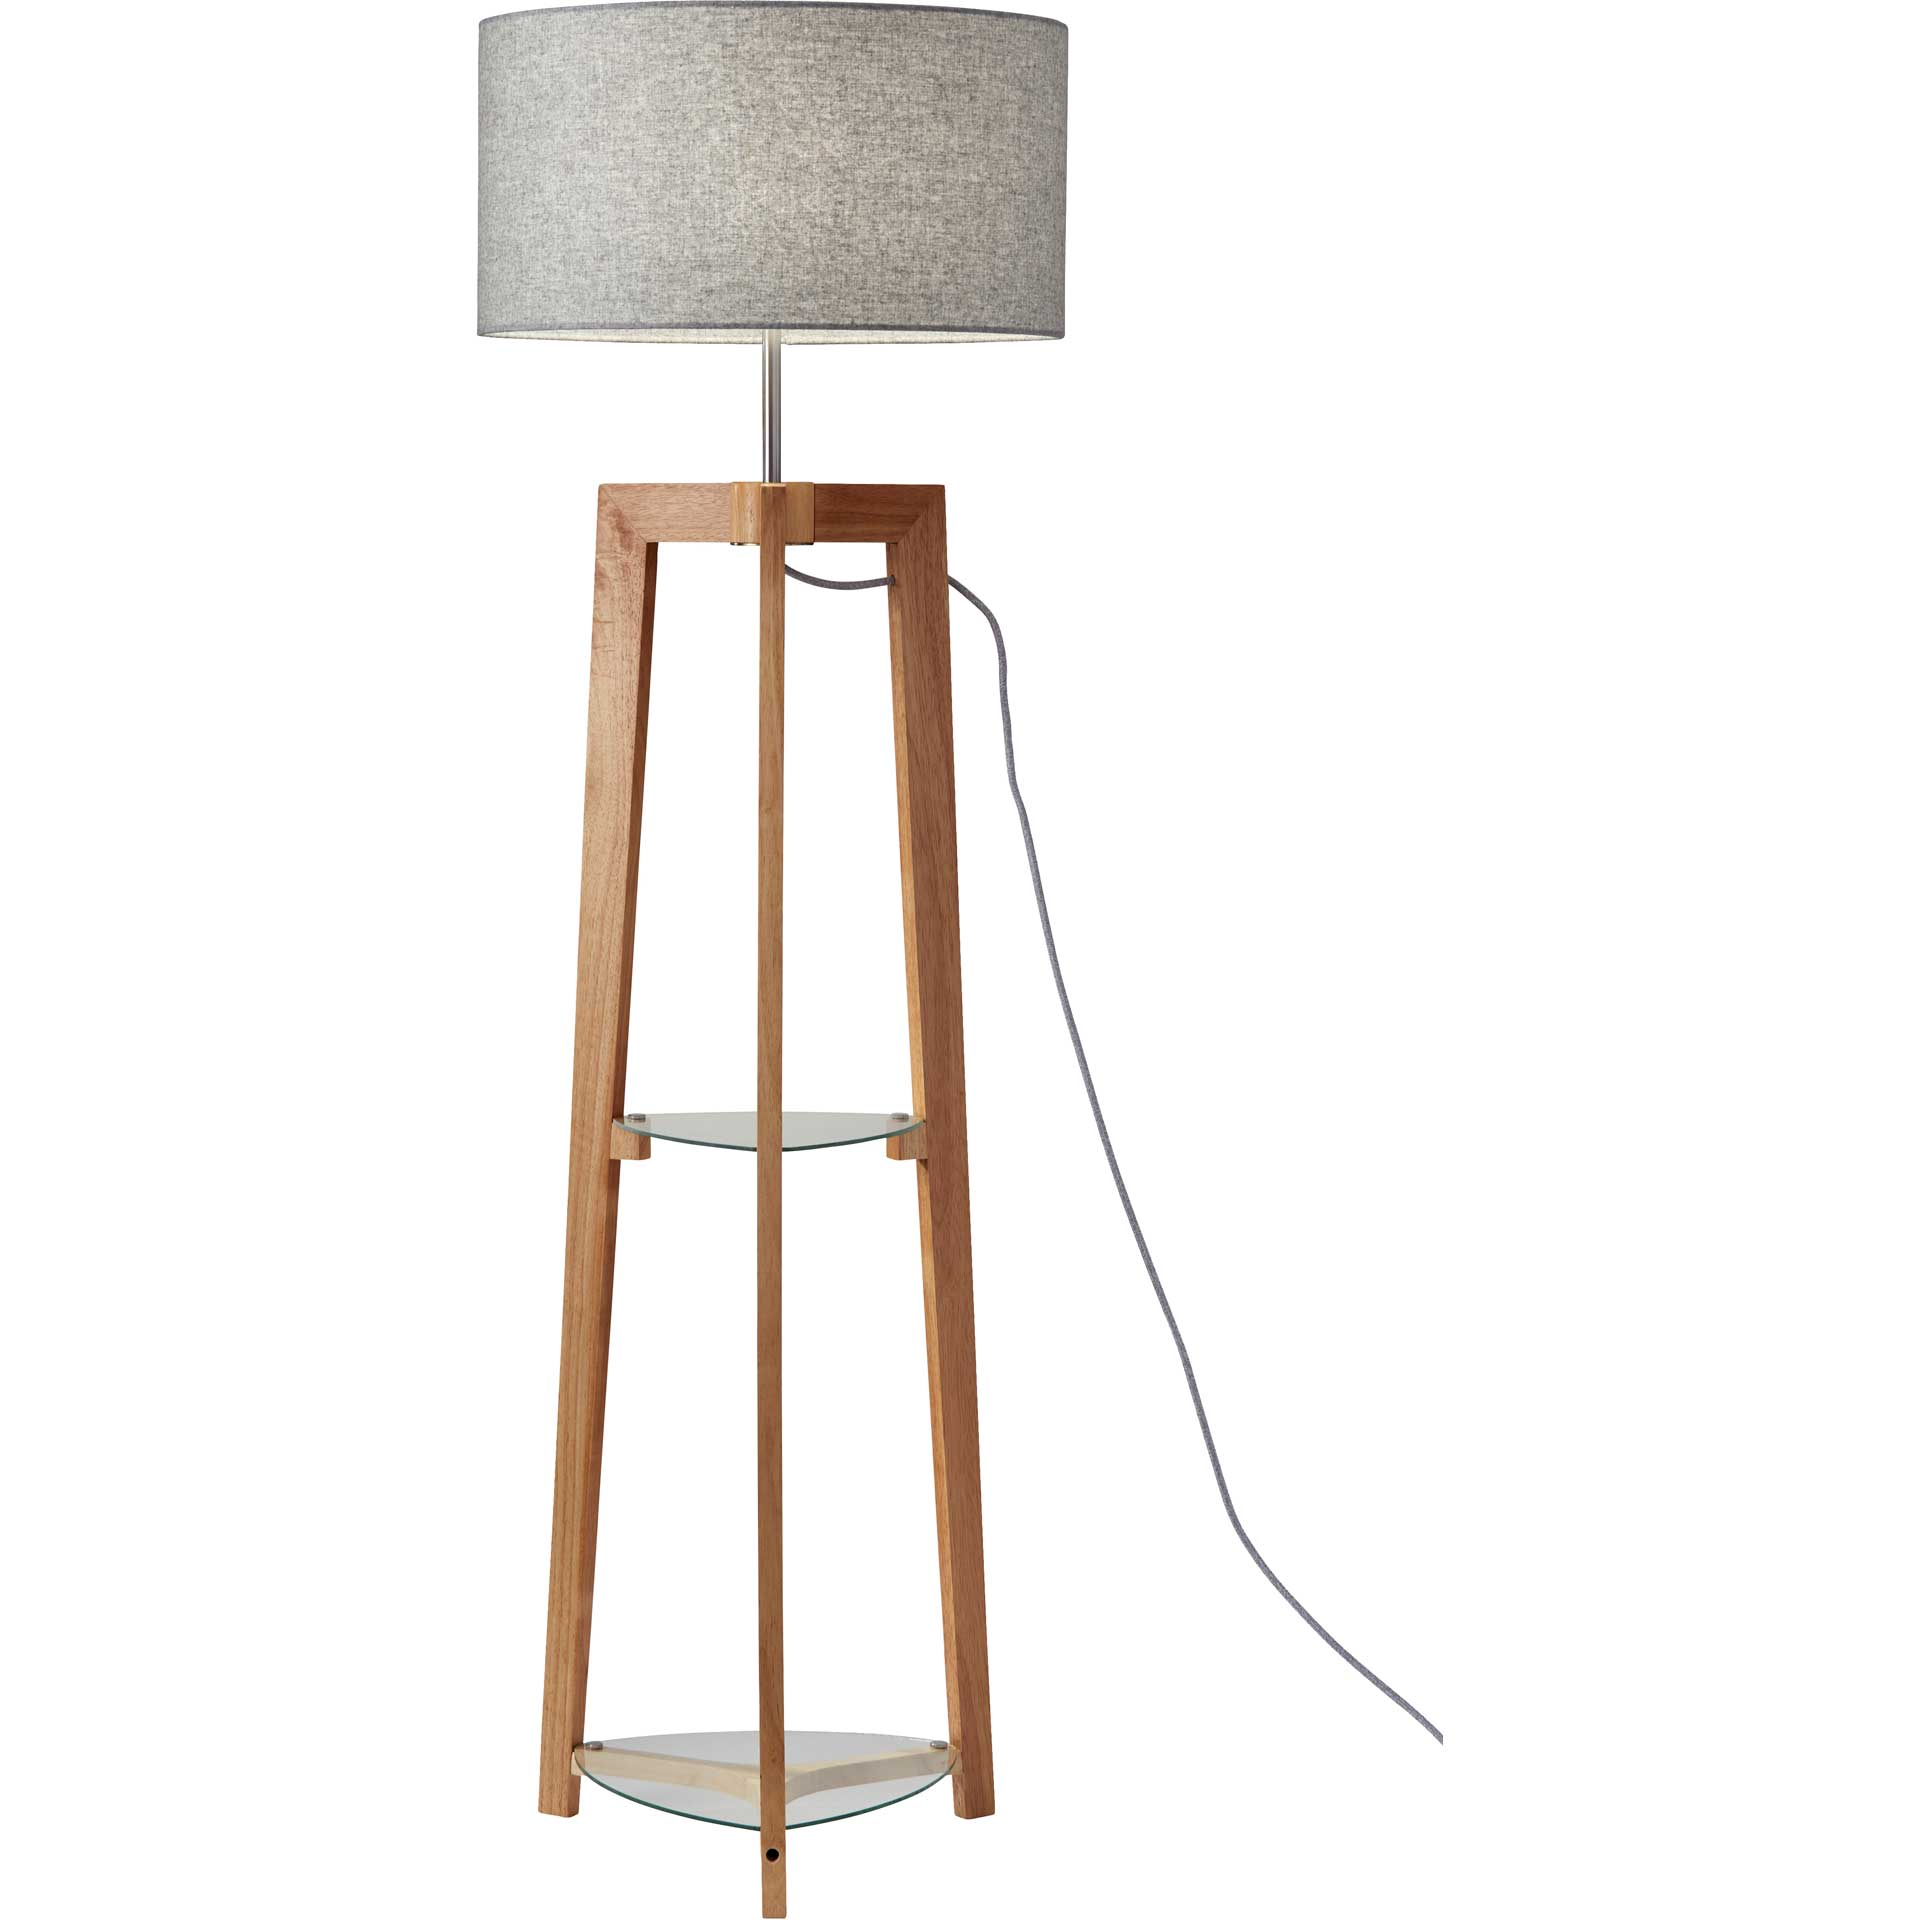 Herblay Shelf Floor Lamp Natural/Gray